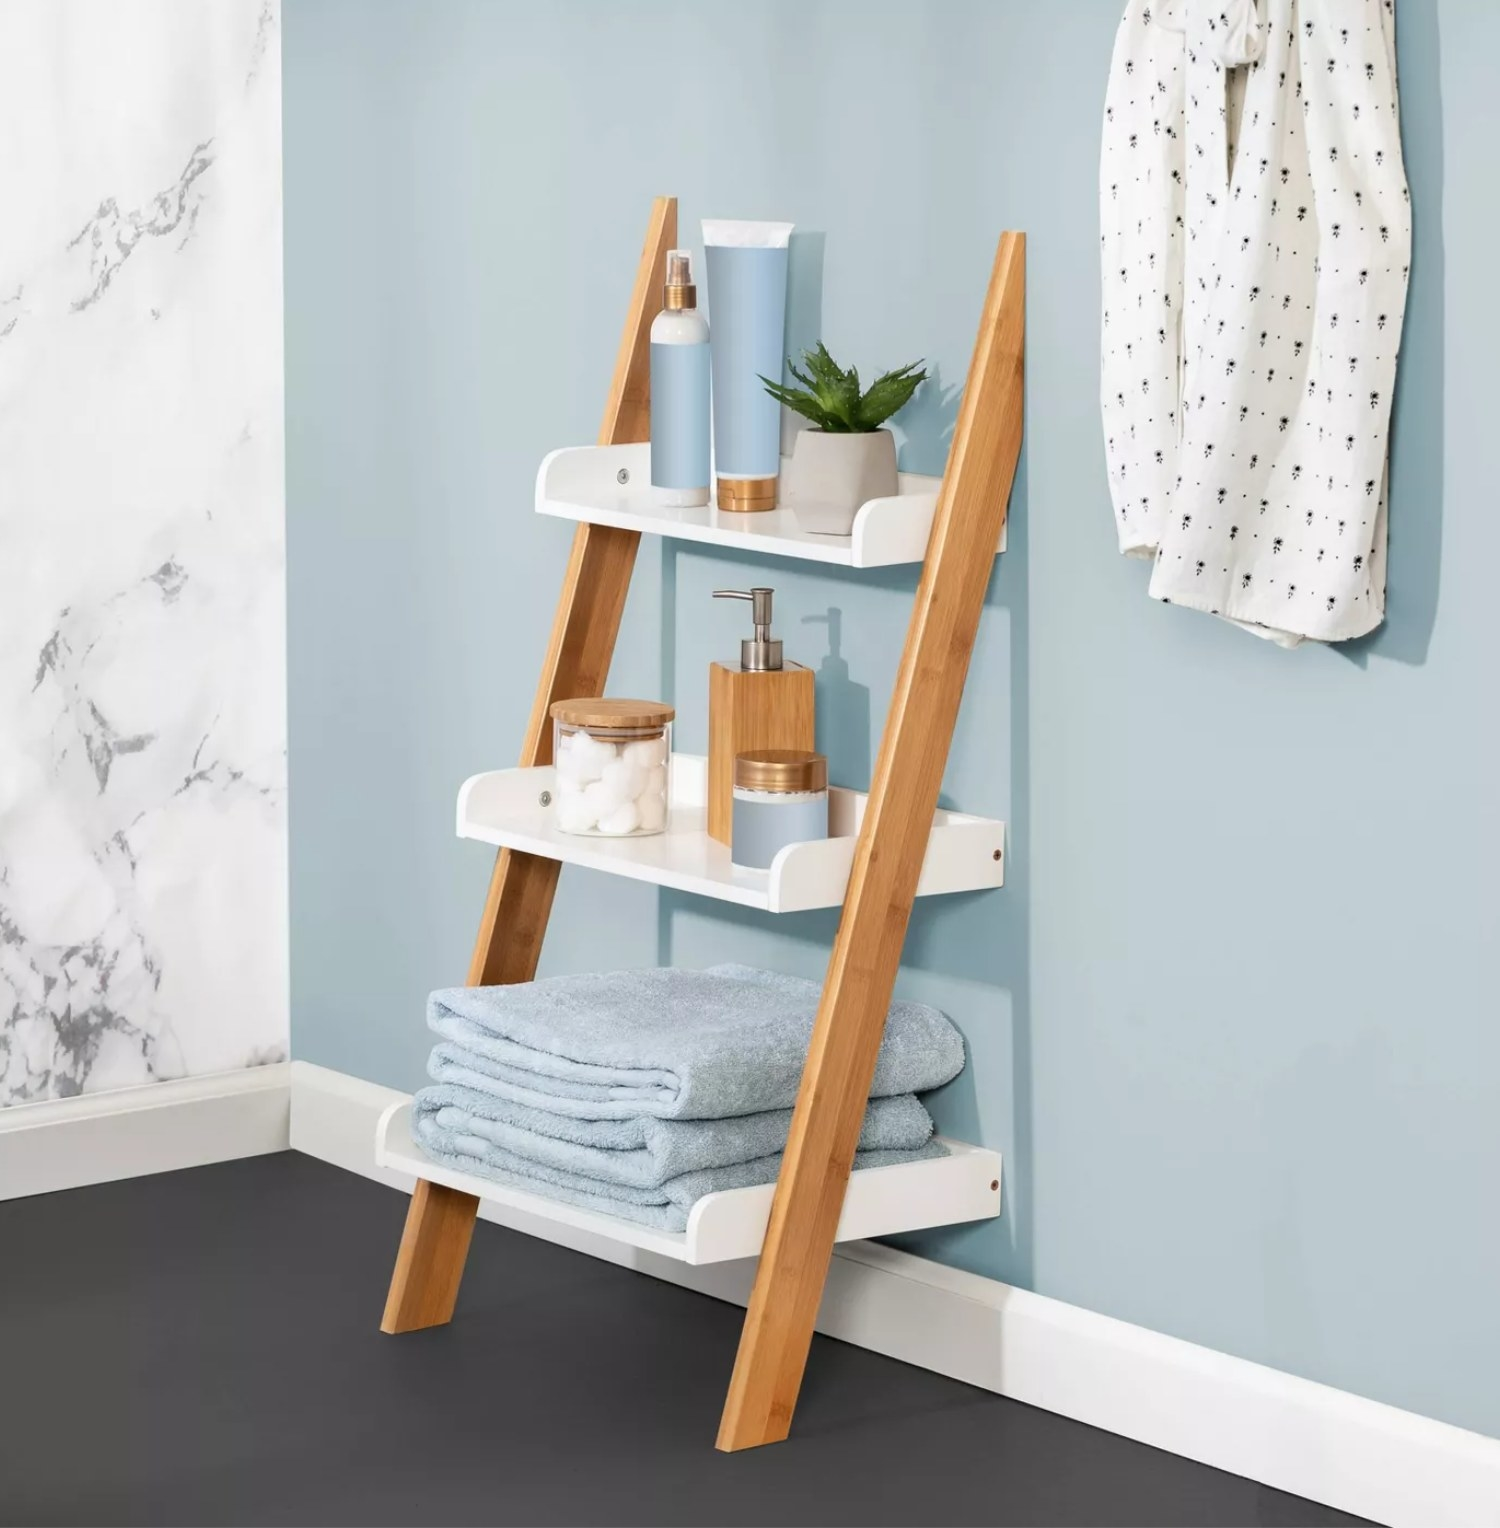 The ladder with bamboo legs and white shelves holding towels and other bathroom necessities